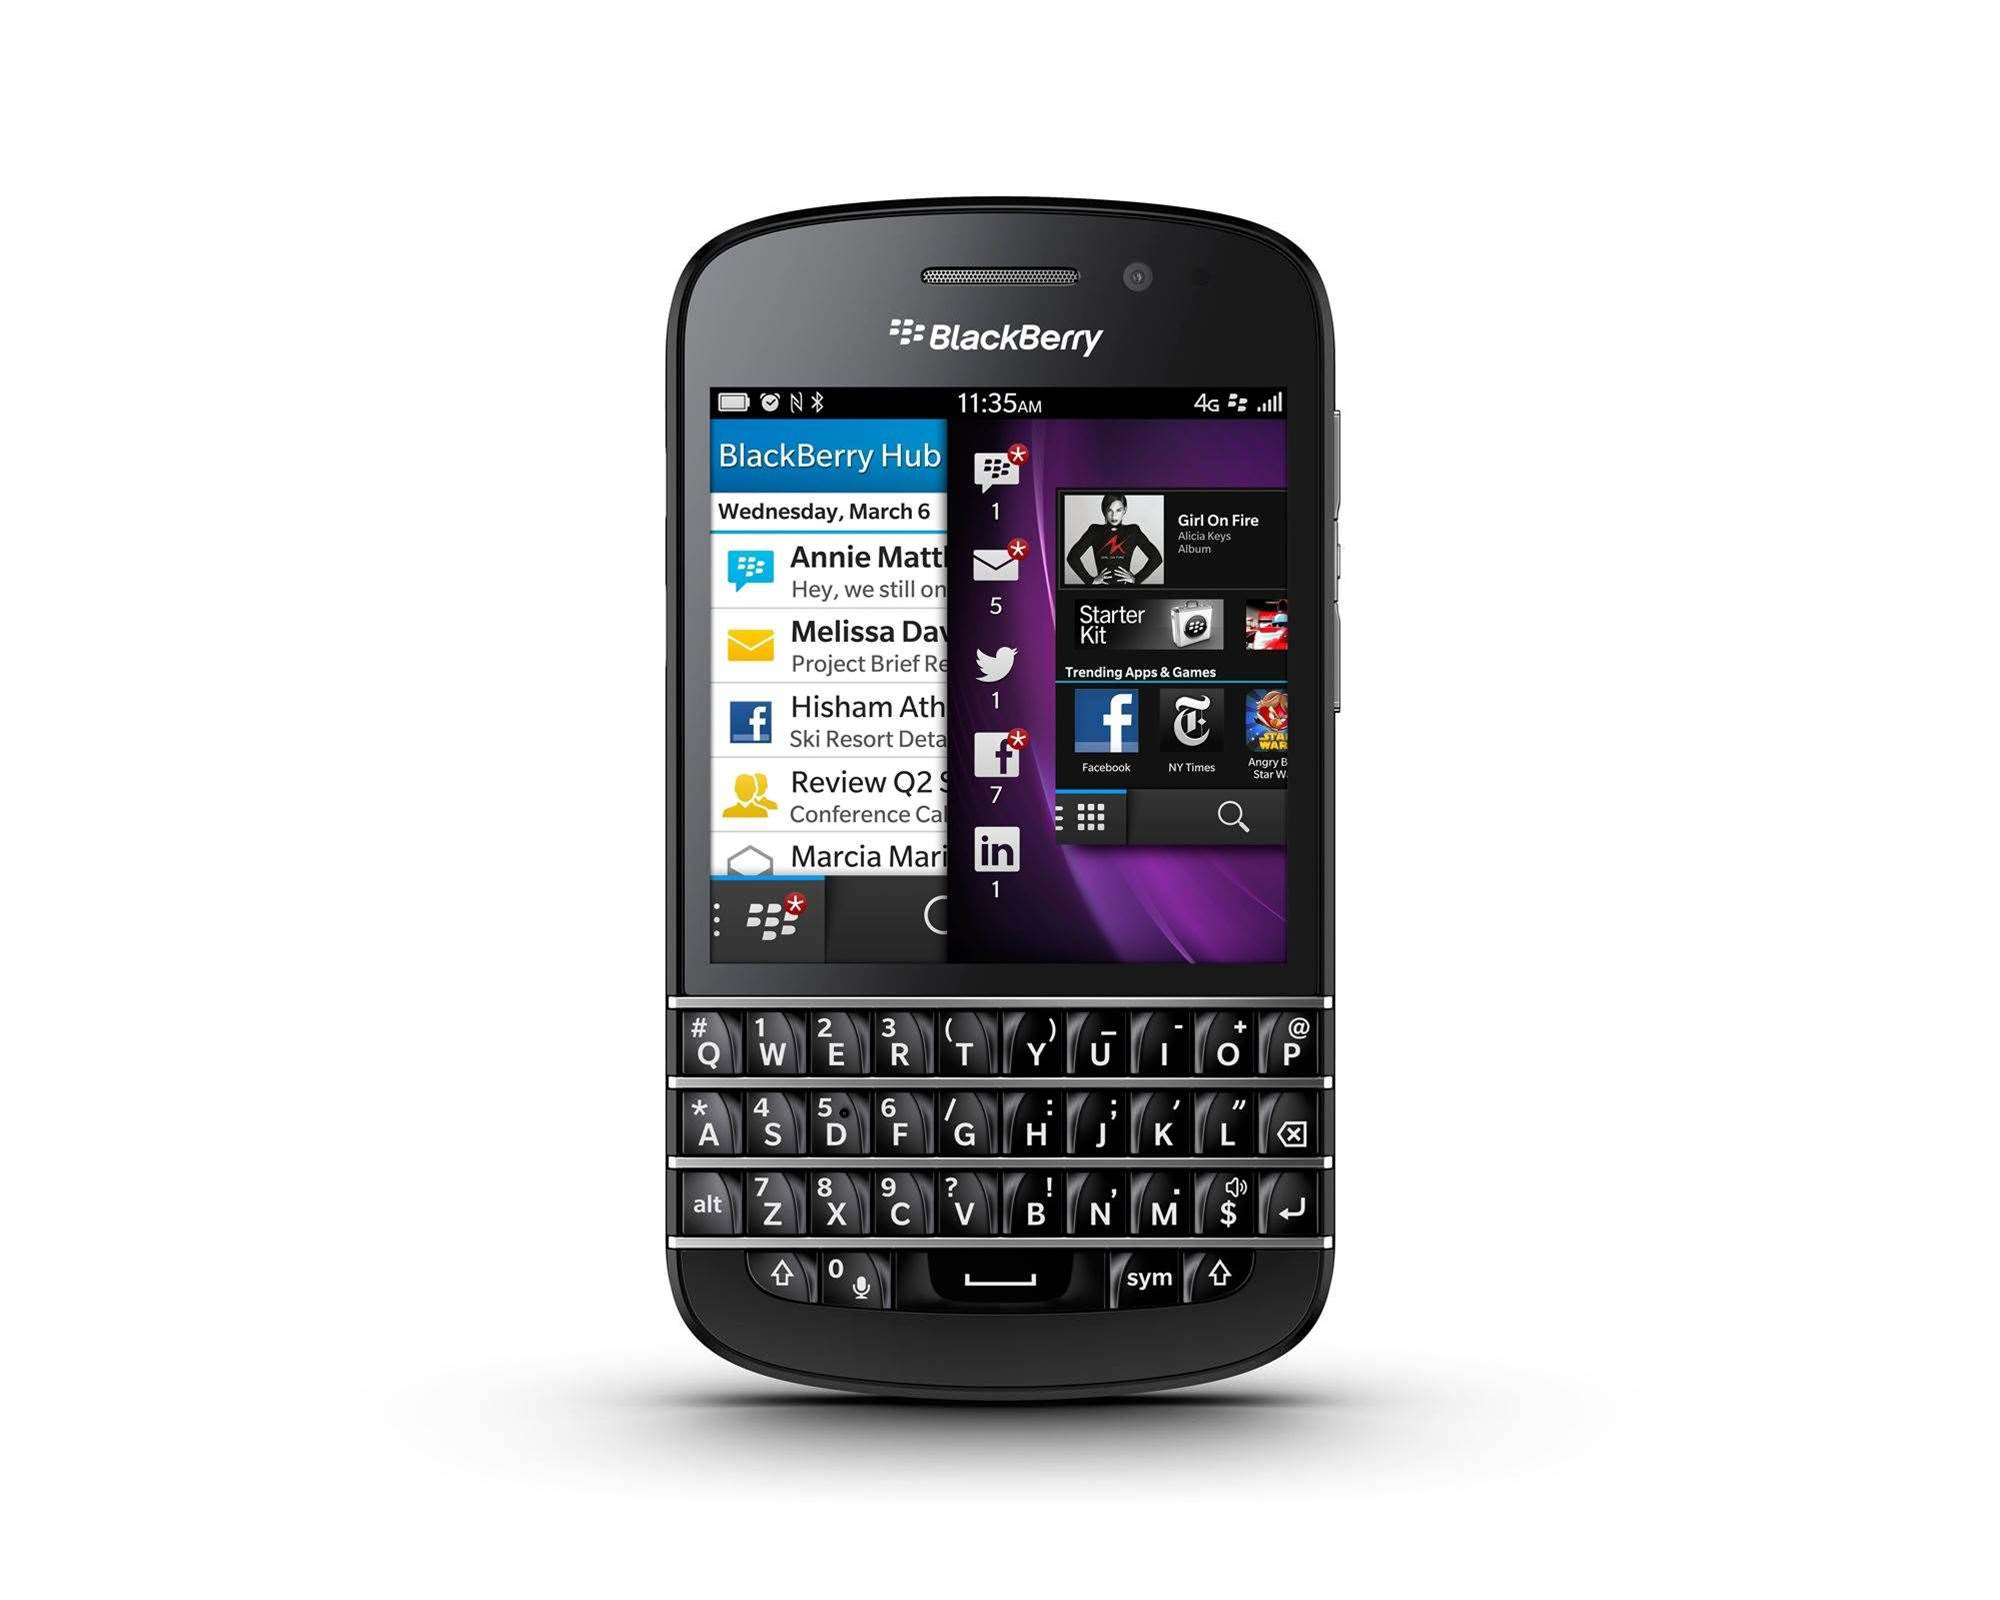 Photos: Blackberry Q10